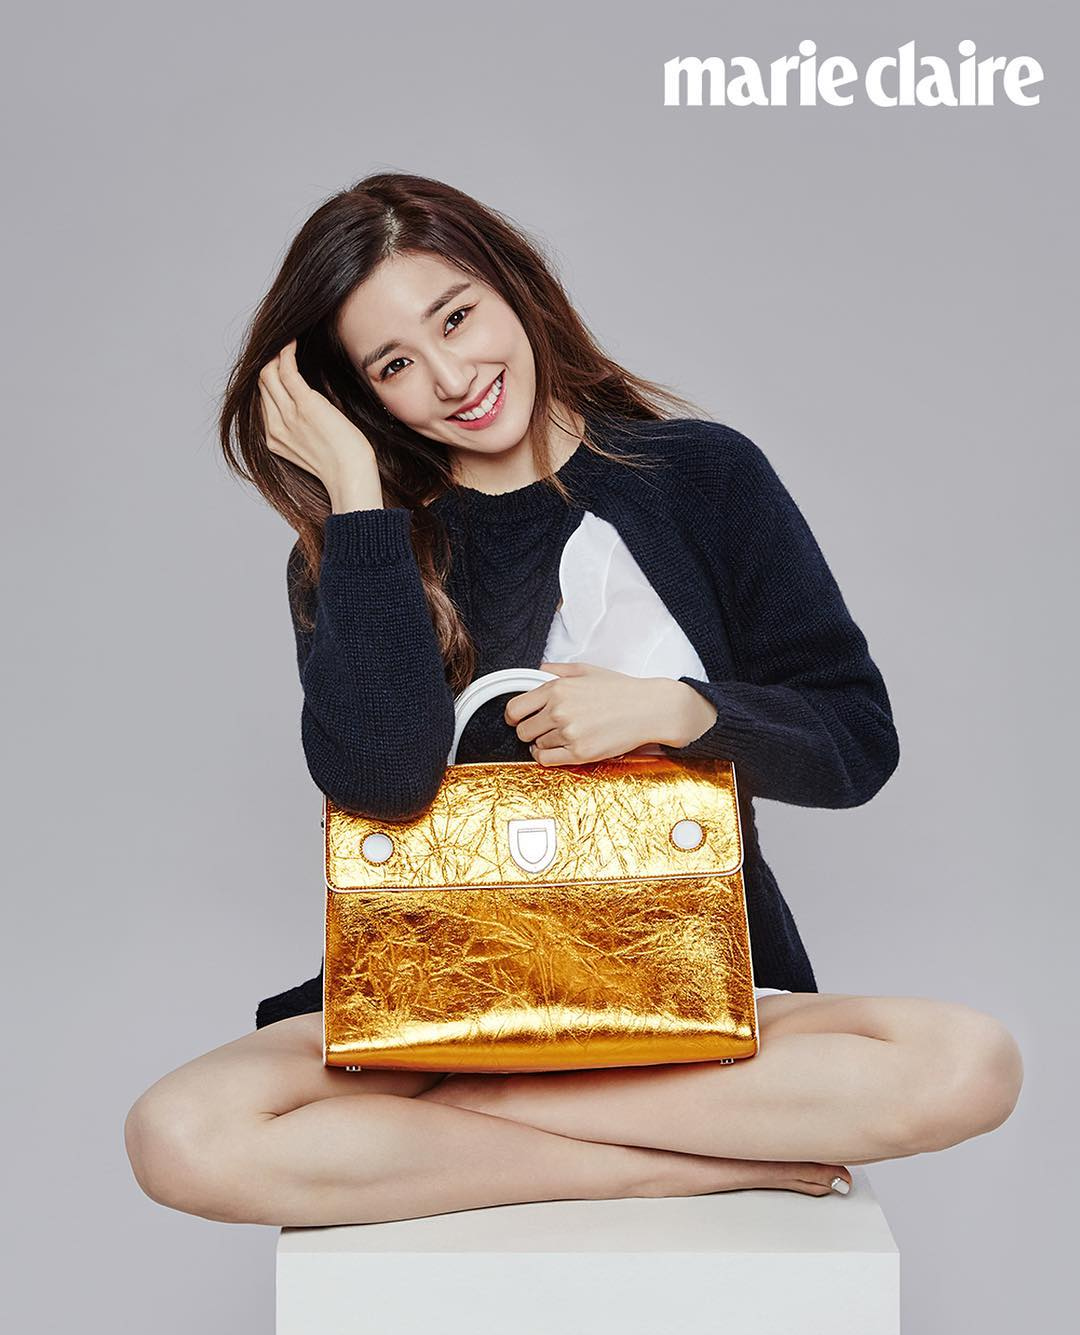 tiffany marie claire